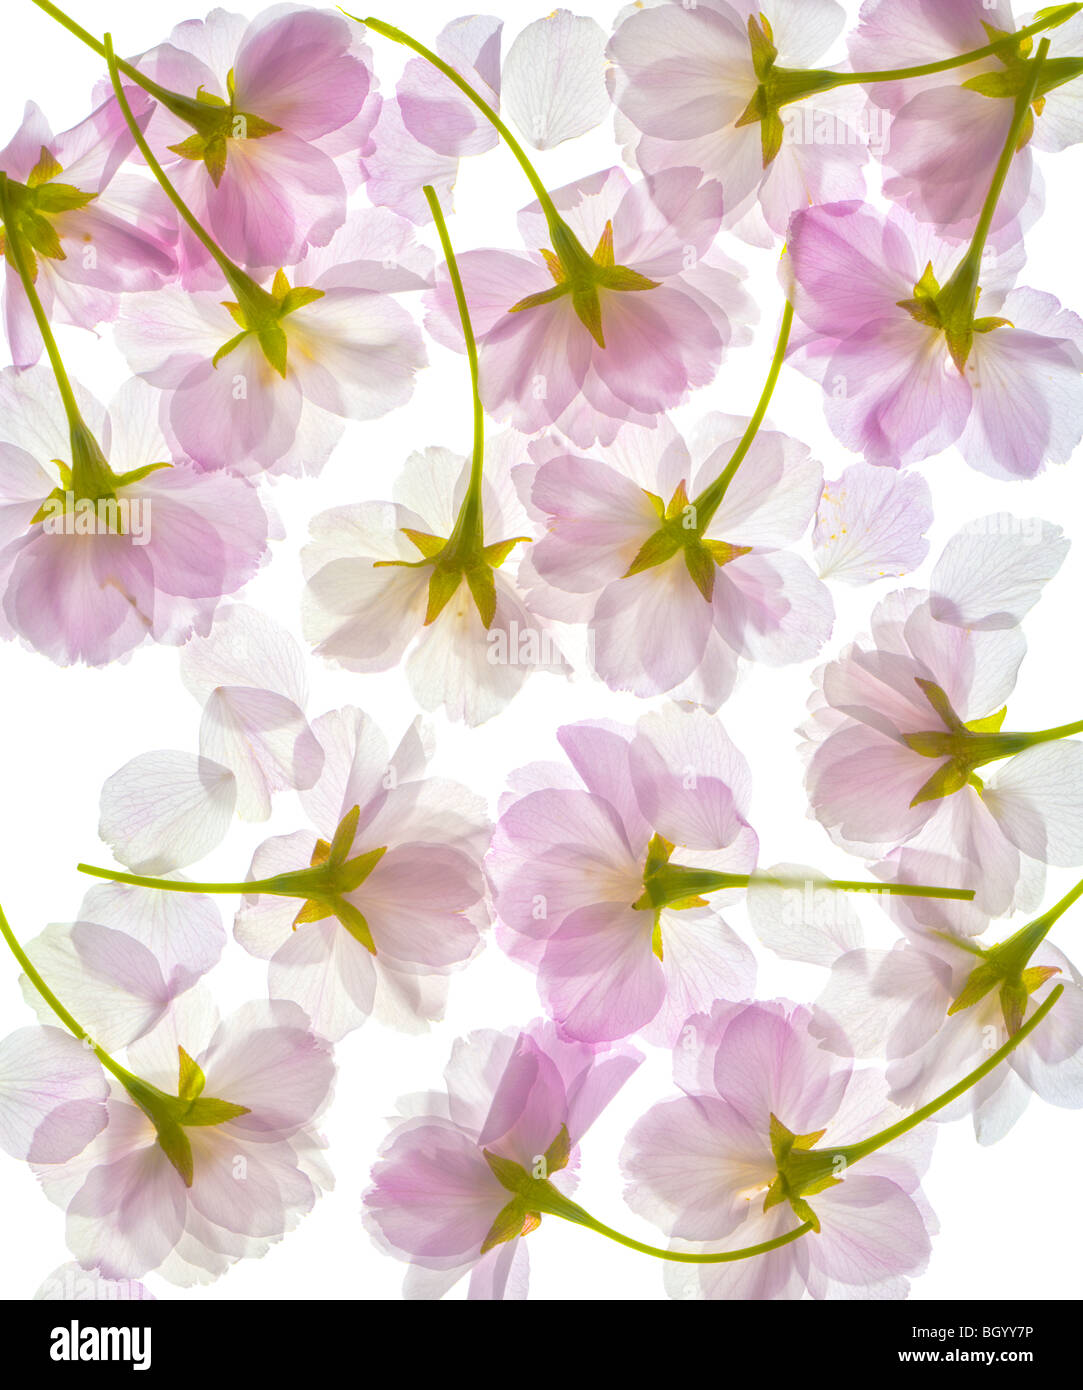 Completely translucent cherry blossom, blossoms, flowers petals. Pattern isolated on a white background. Close up. - Stock Image